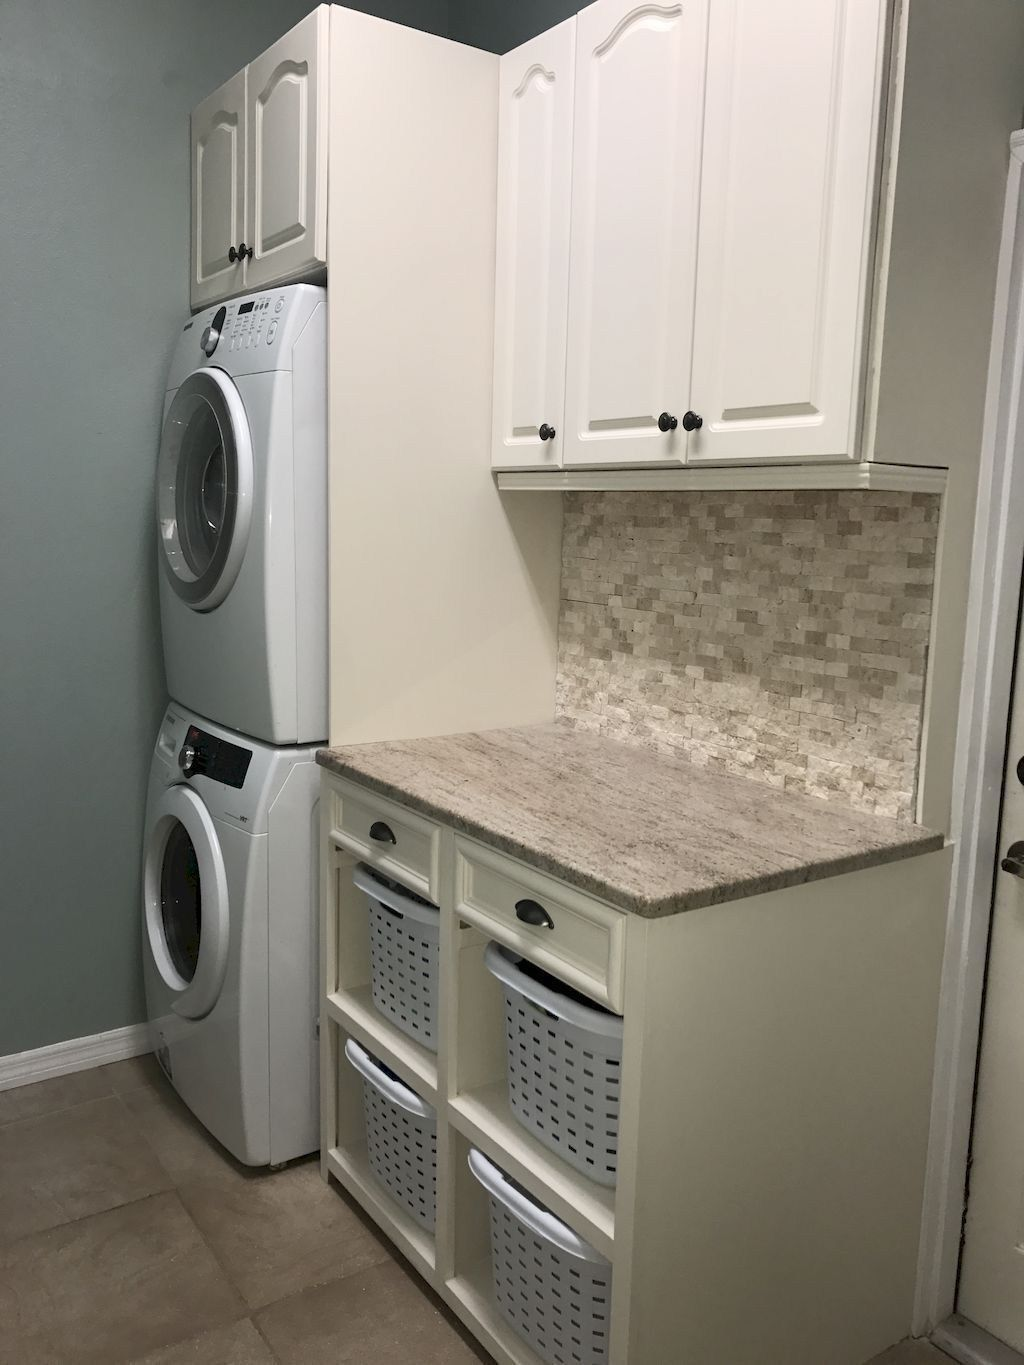 10 Small Laundry Room Ideas to Feel Spacious Inside #laundryrooms